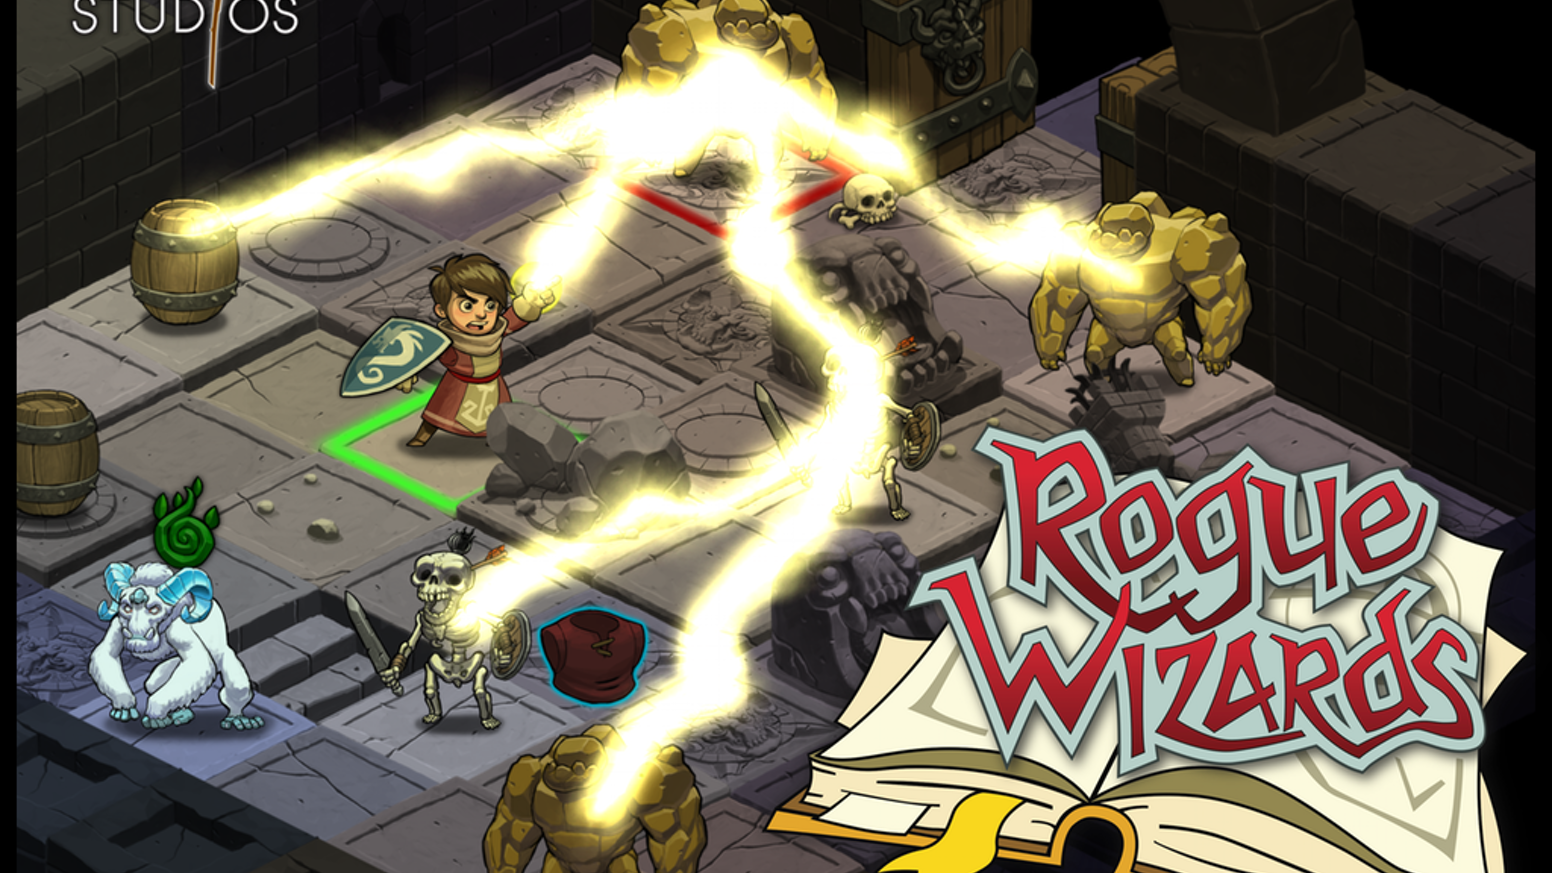 Battle creatures, collect loot, master magic, and build a Wizard Tower in a turn-based, rogue-like, dungeon-crawling, town-building RPG for PC, Mac, iOS, and Android.